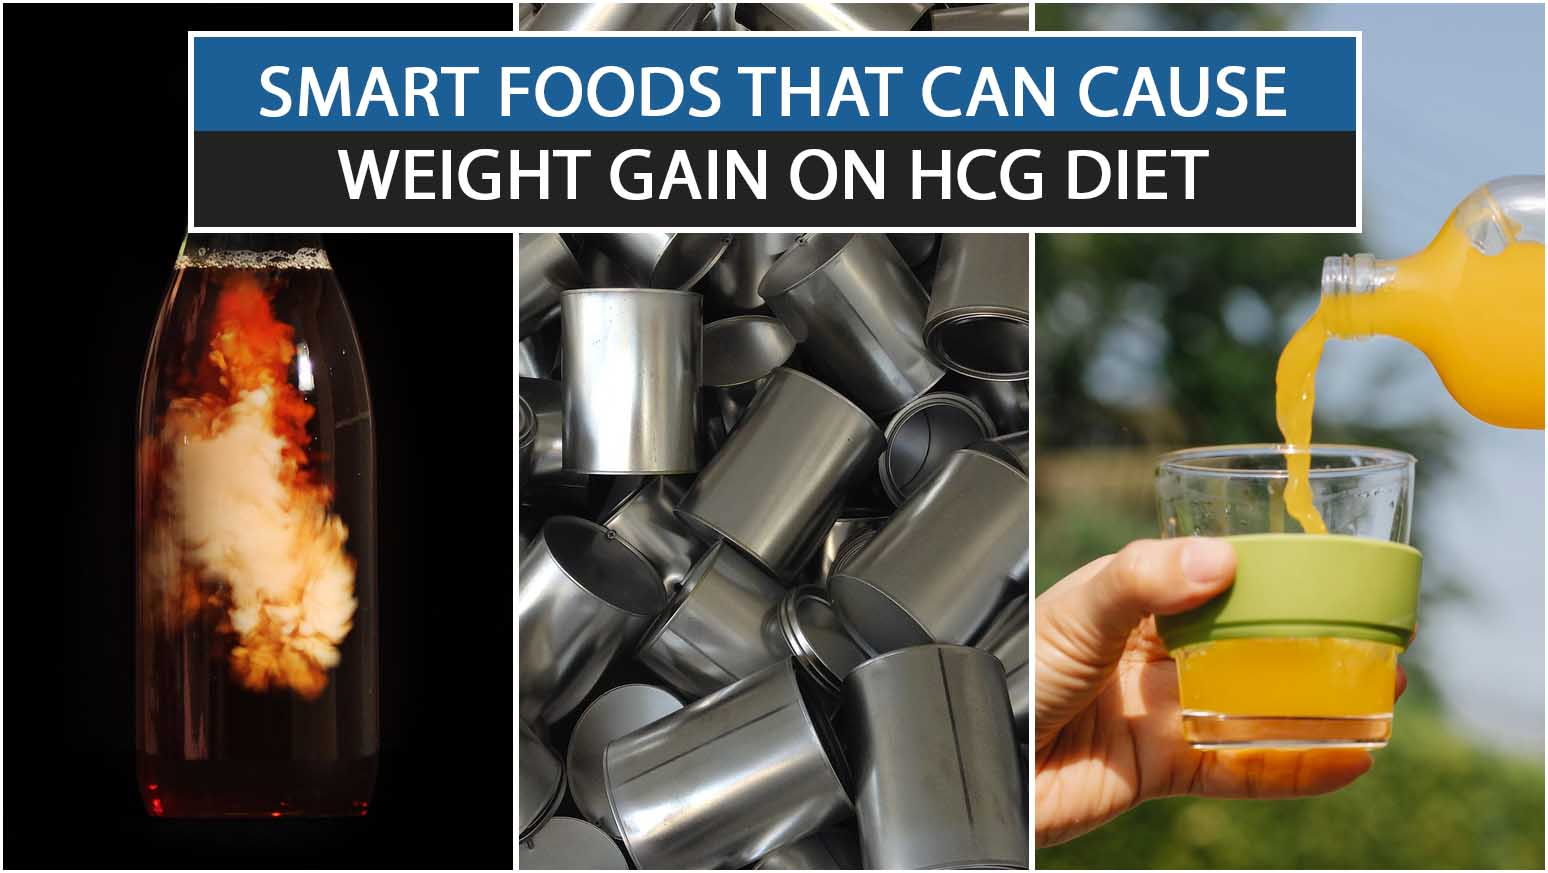 SMART FOODS THAT CAN CAUSE WEIGHT GAIN ON HCG DIET